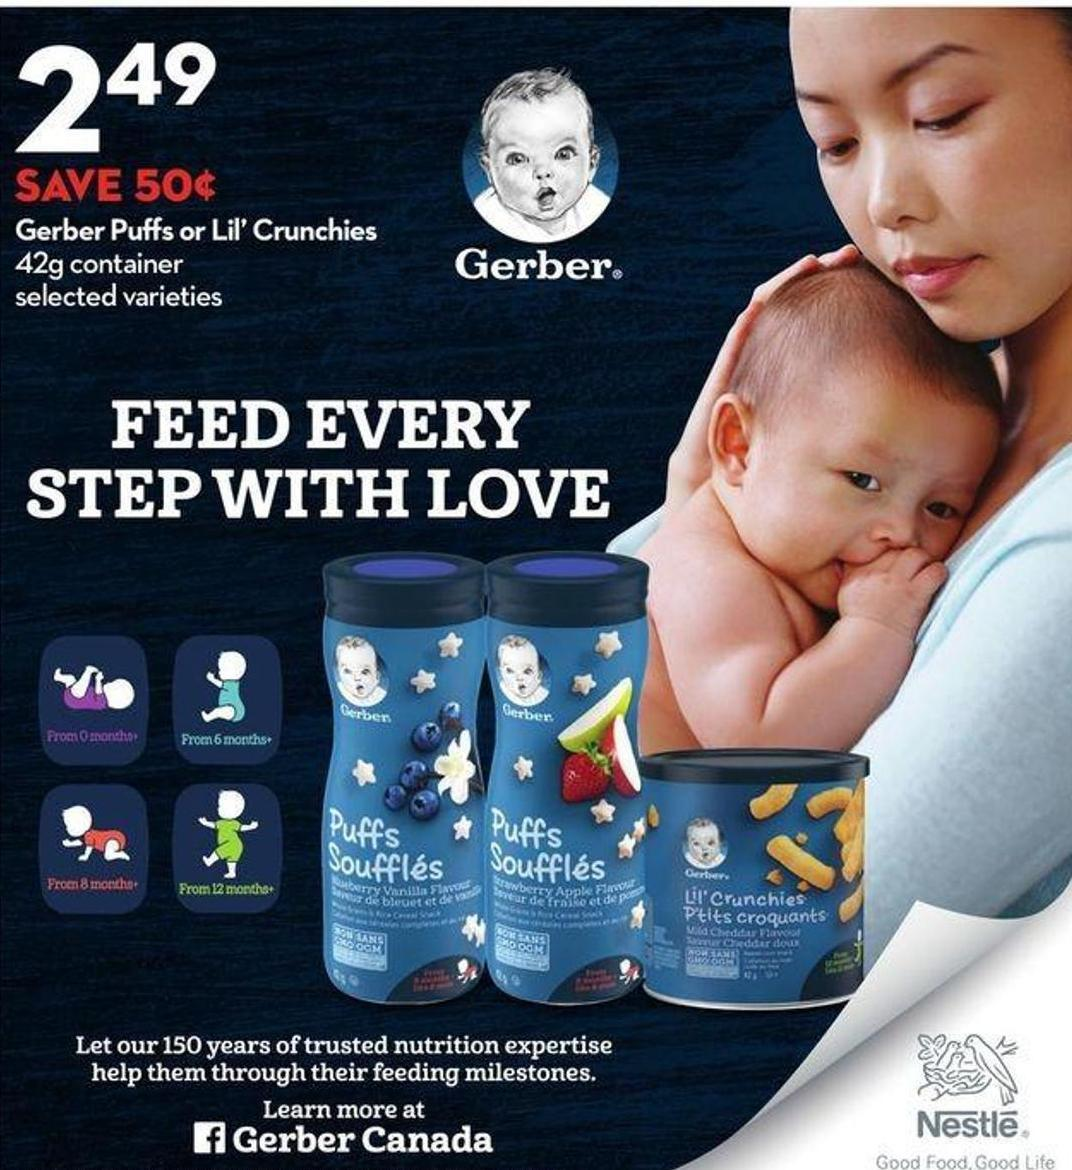 Gerber Puffs or Lil' Crunchies